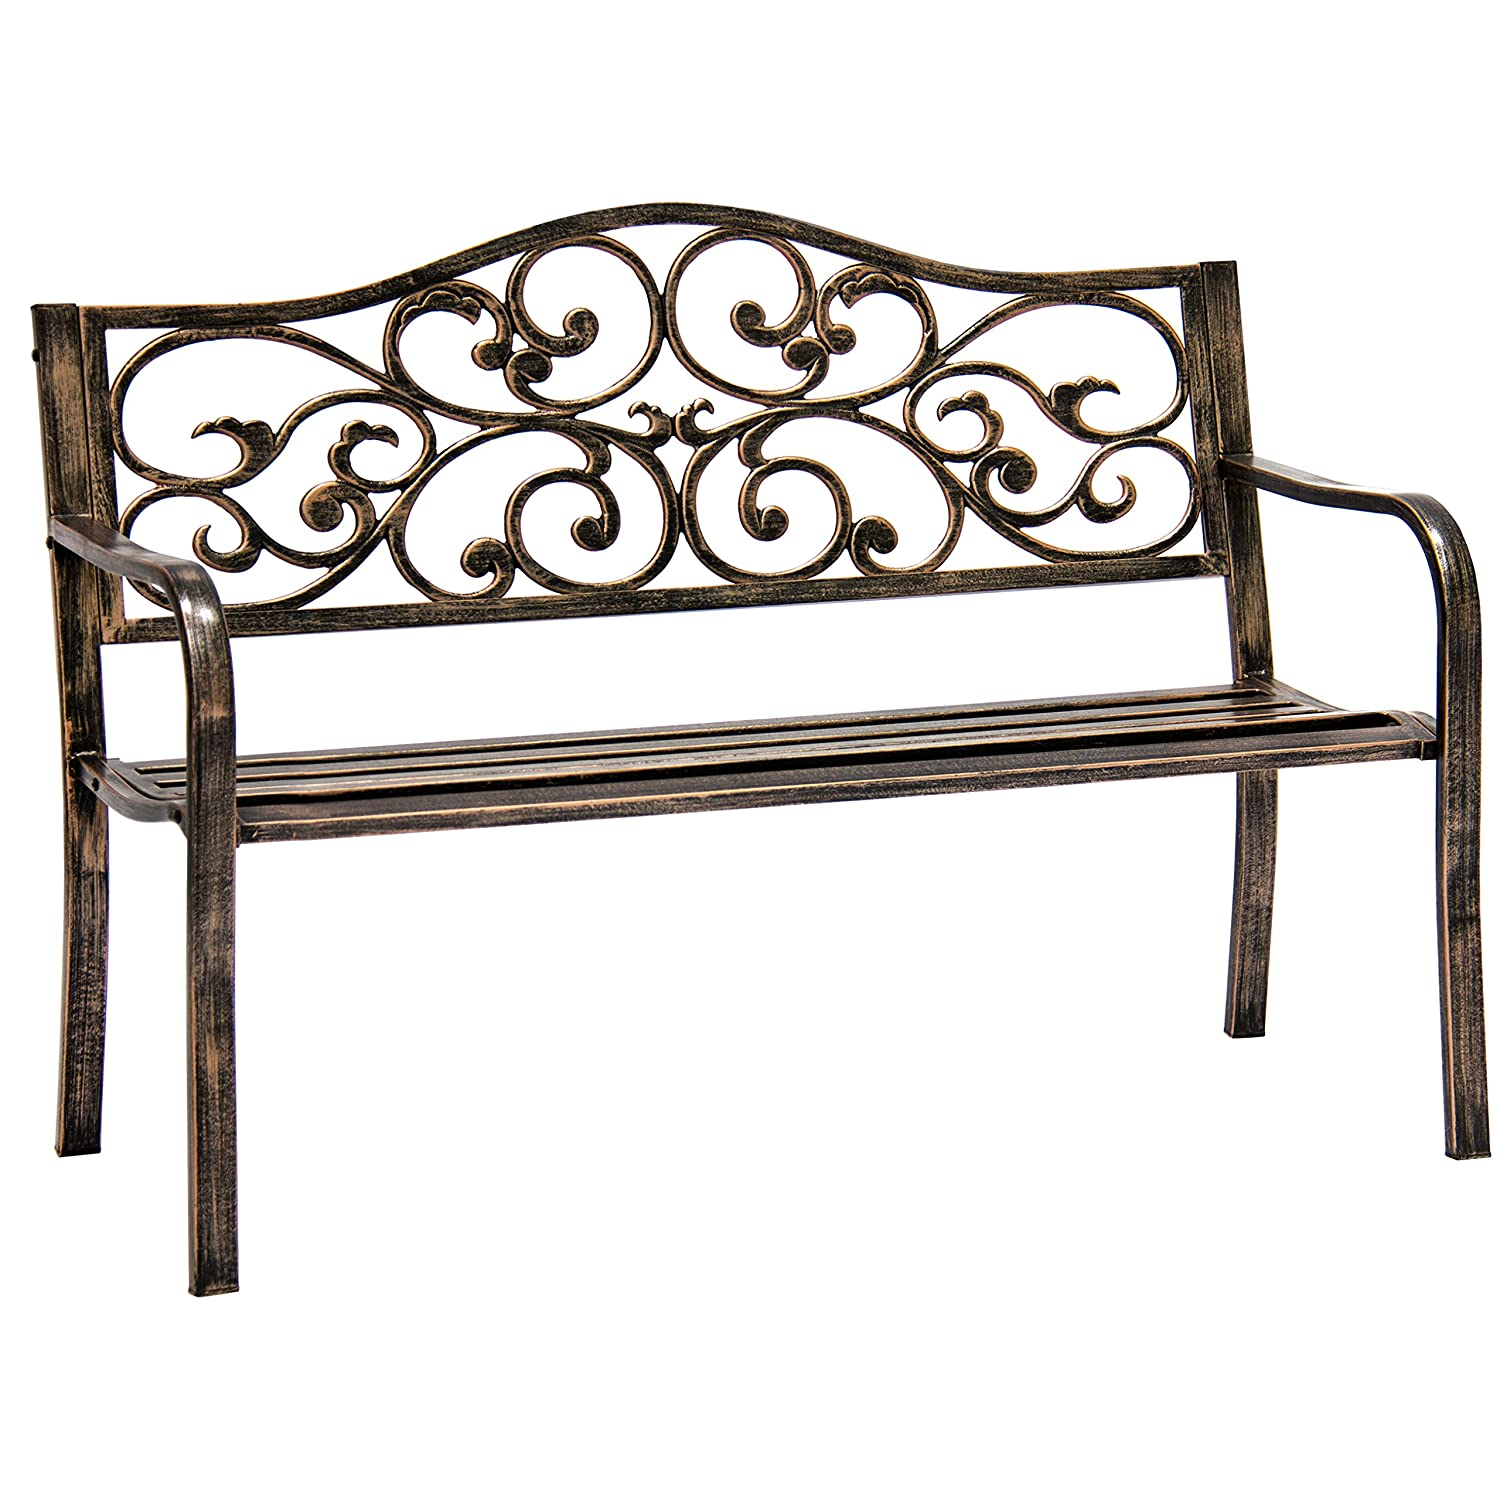 Best Choice Products 50in Classic Metal Patio Garden Bench for Yard, Porch w/Decorative Floral Scroll Design - Bronze